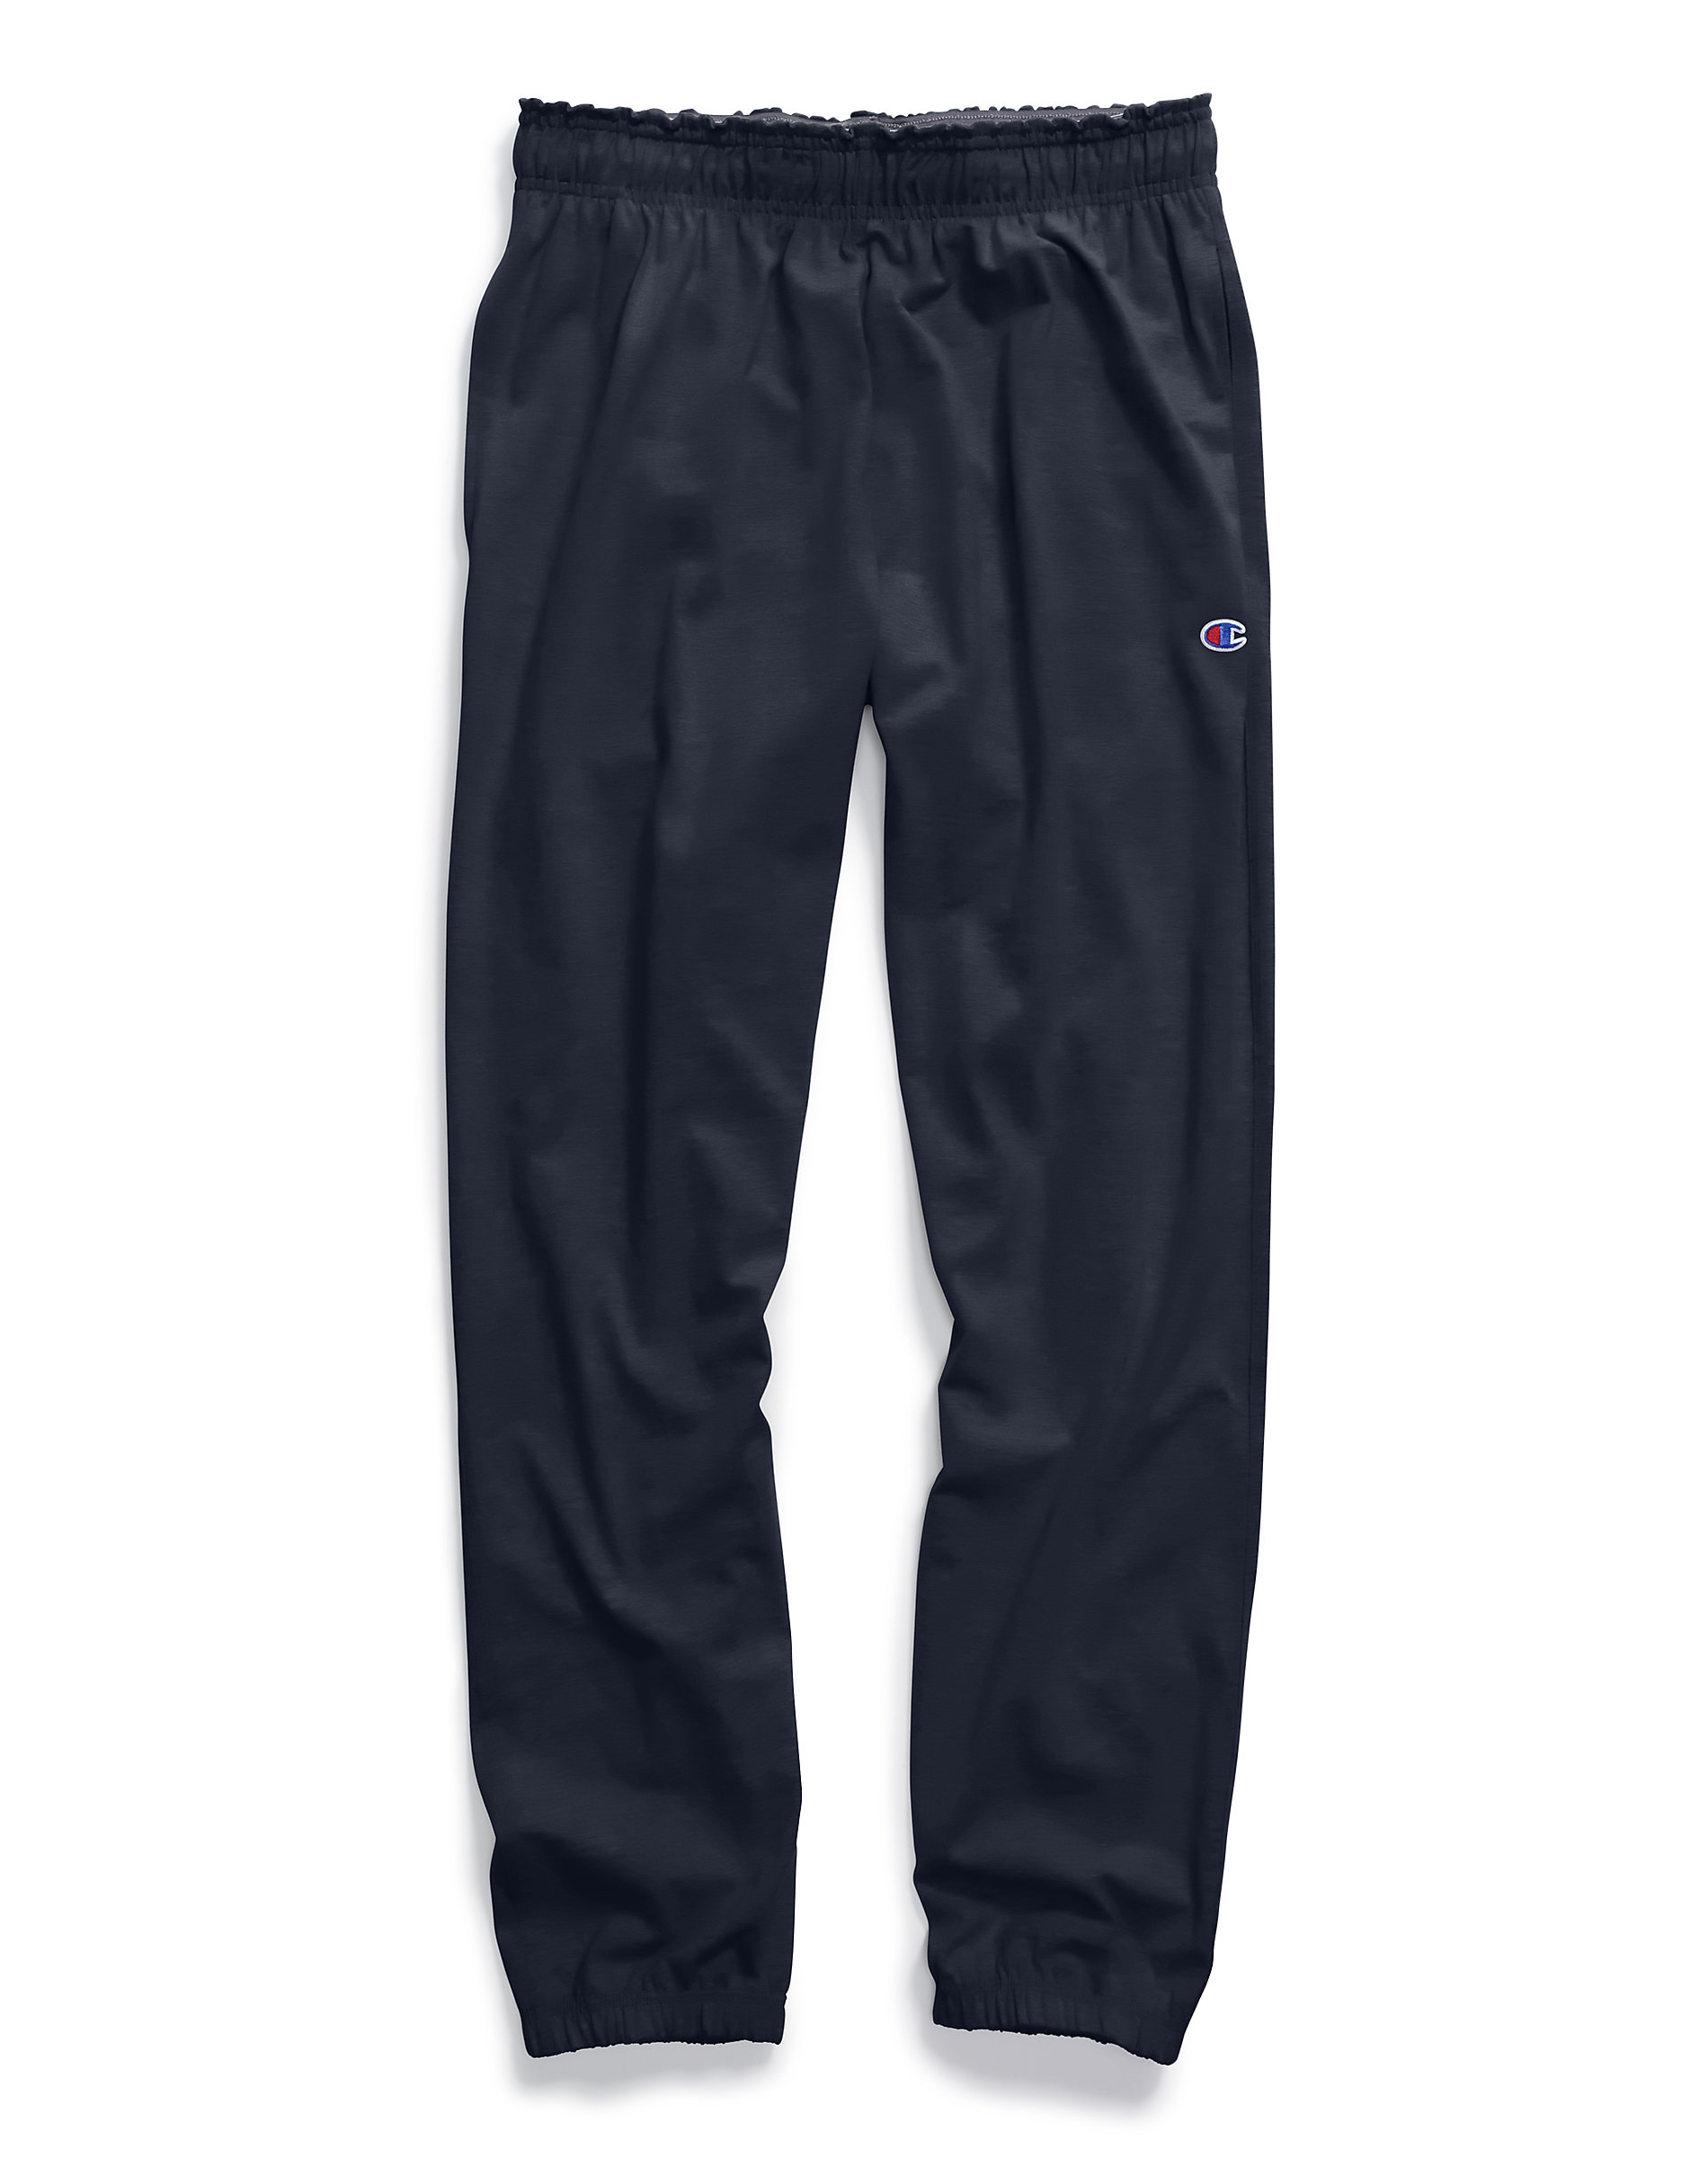 Champion-Authentic-Men-039-s-Athletic-Pants-Closed-Bottom-Jersey-Sweatpants-Workout thumbnail 5